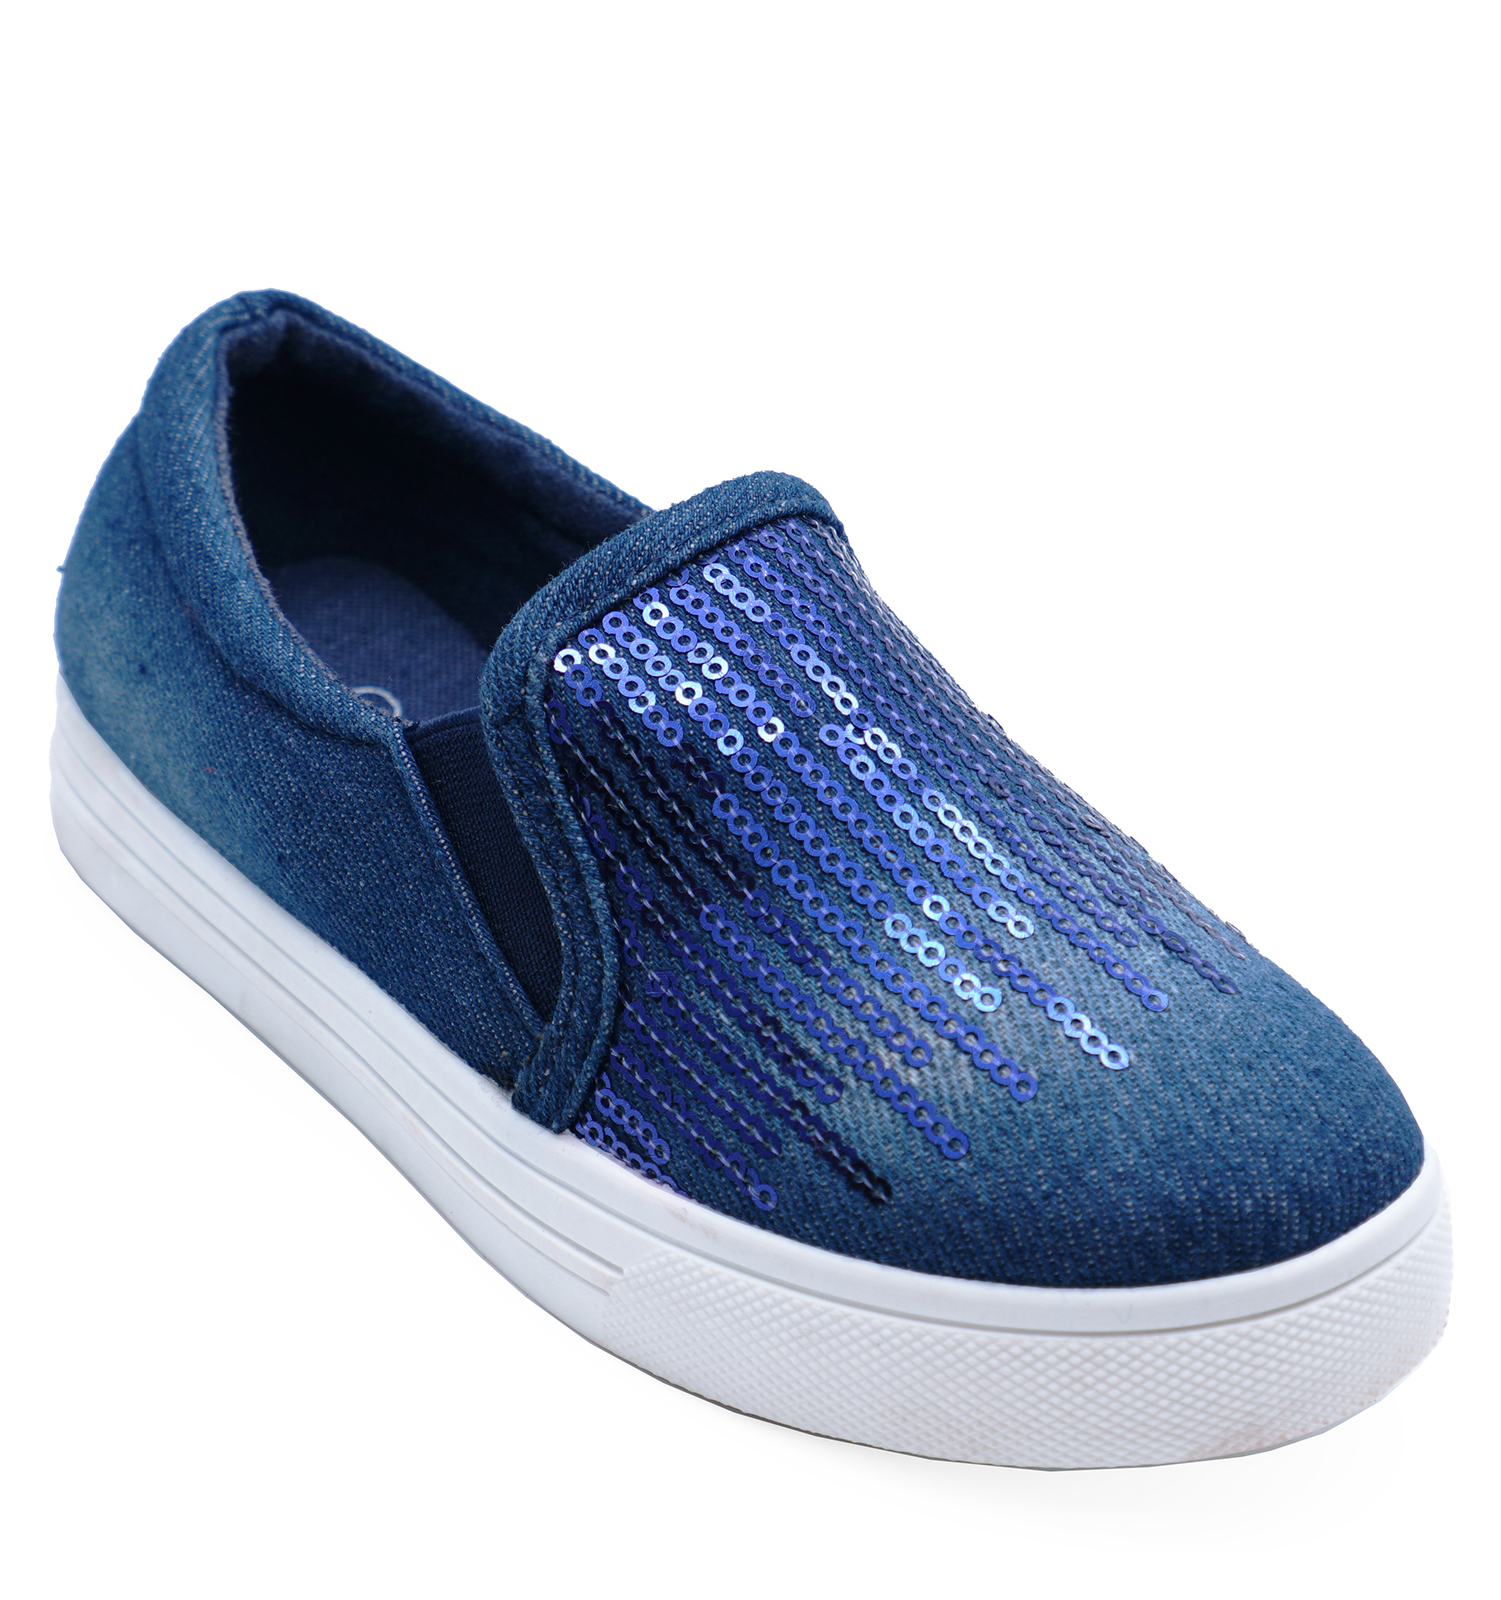 CHILDRENS-KIDS-GIRLS-DENIM-SLIP-ON-CASUAL-SHOES-TRAINERS-DANCE-PUMPS-SIZES-8-1 thumbnail 3